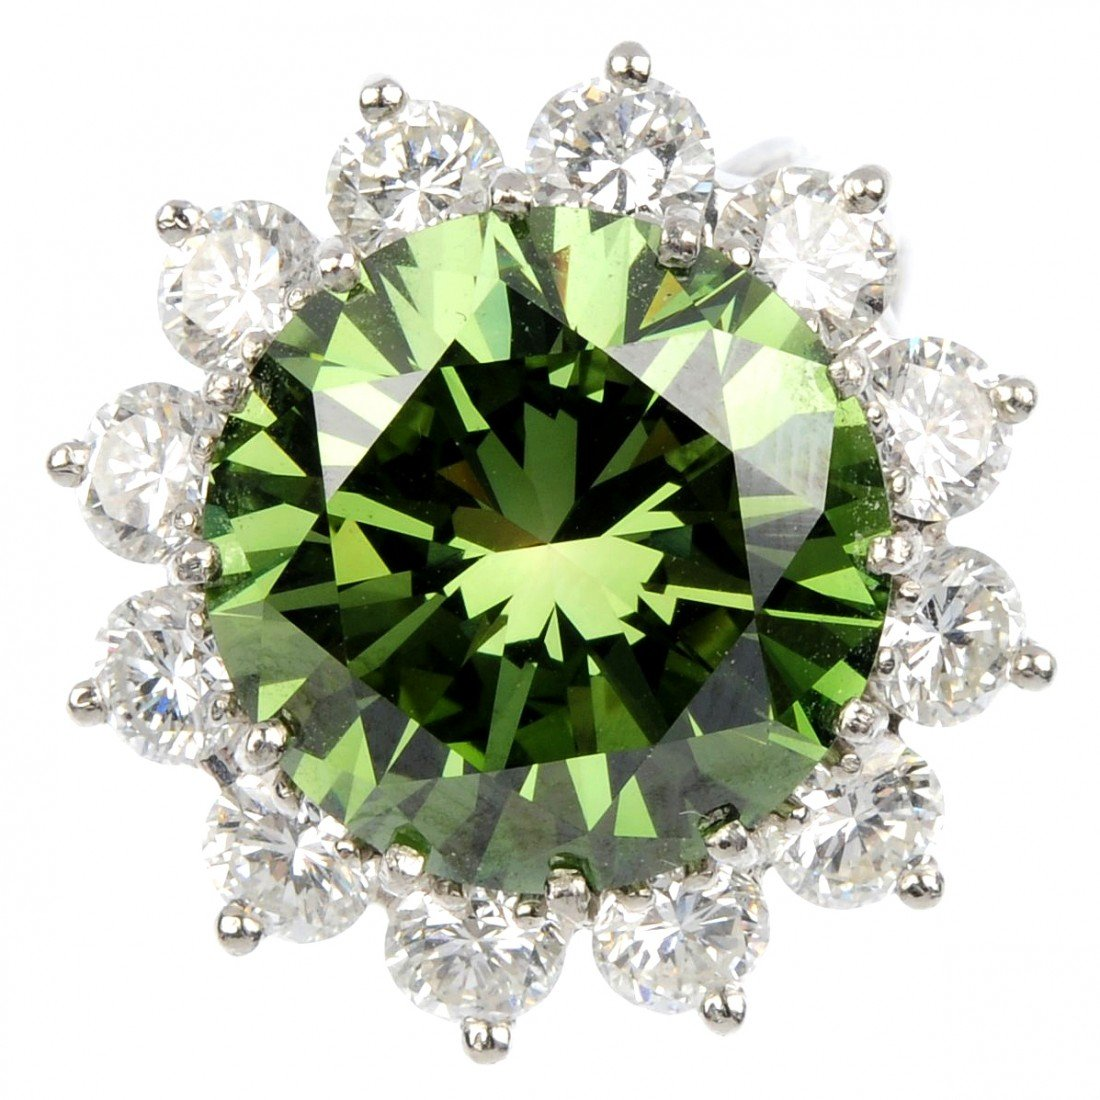 173: A treated green diamond cluster ring. The brillian